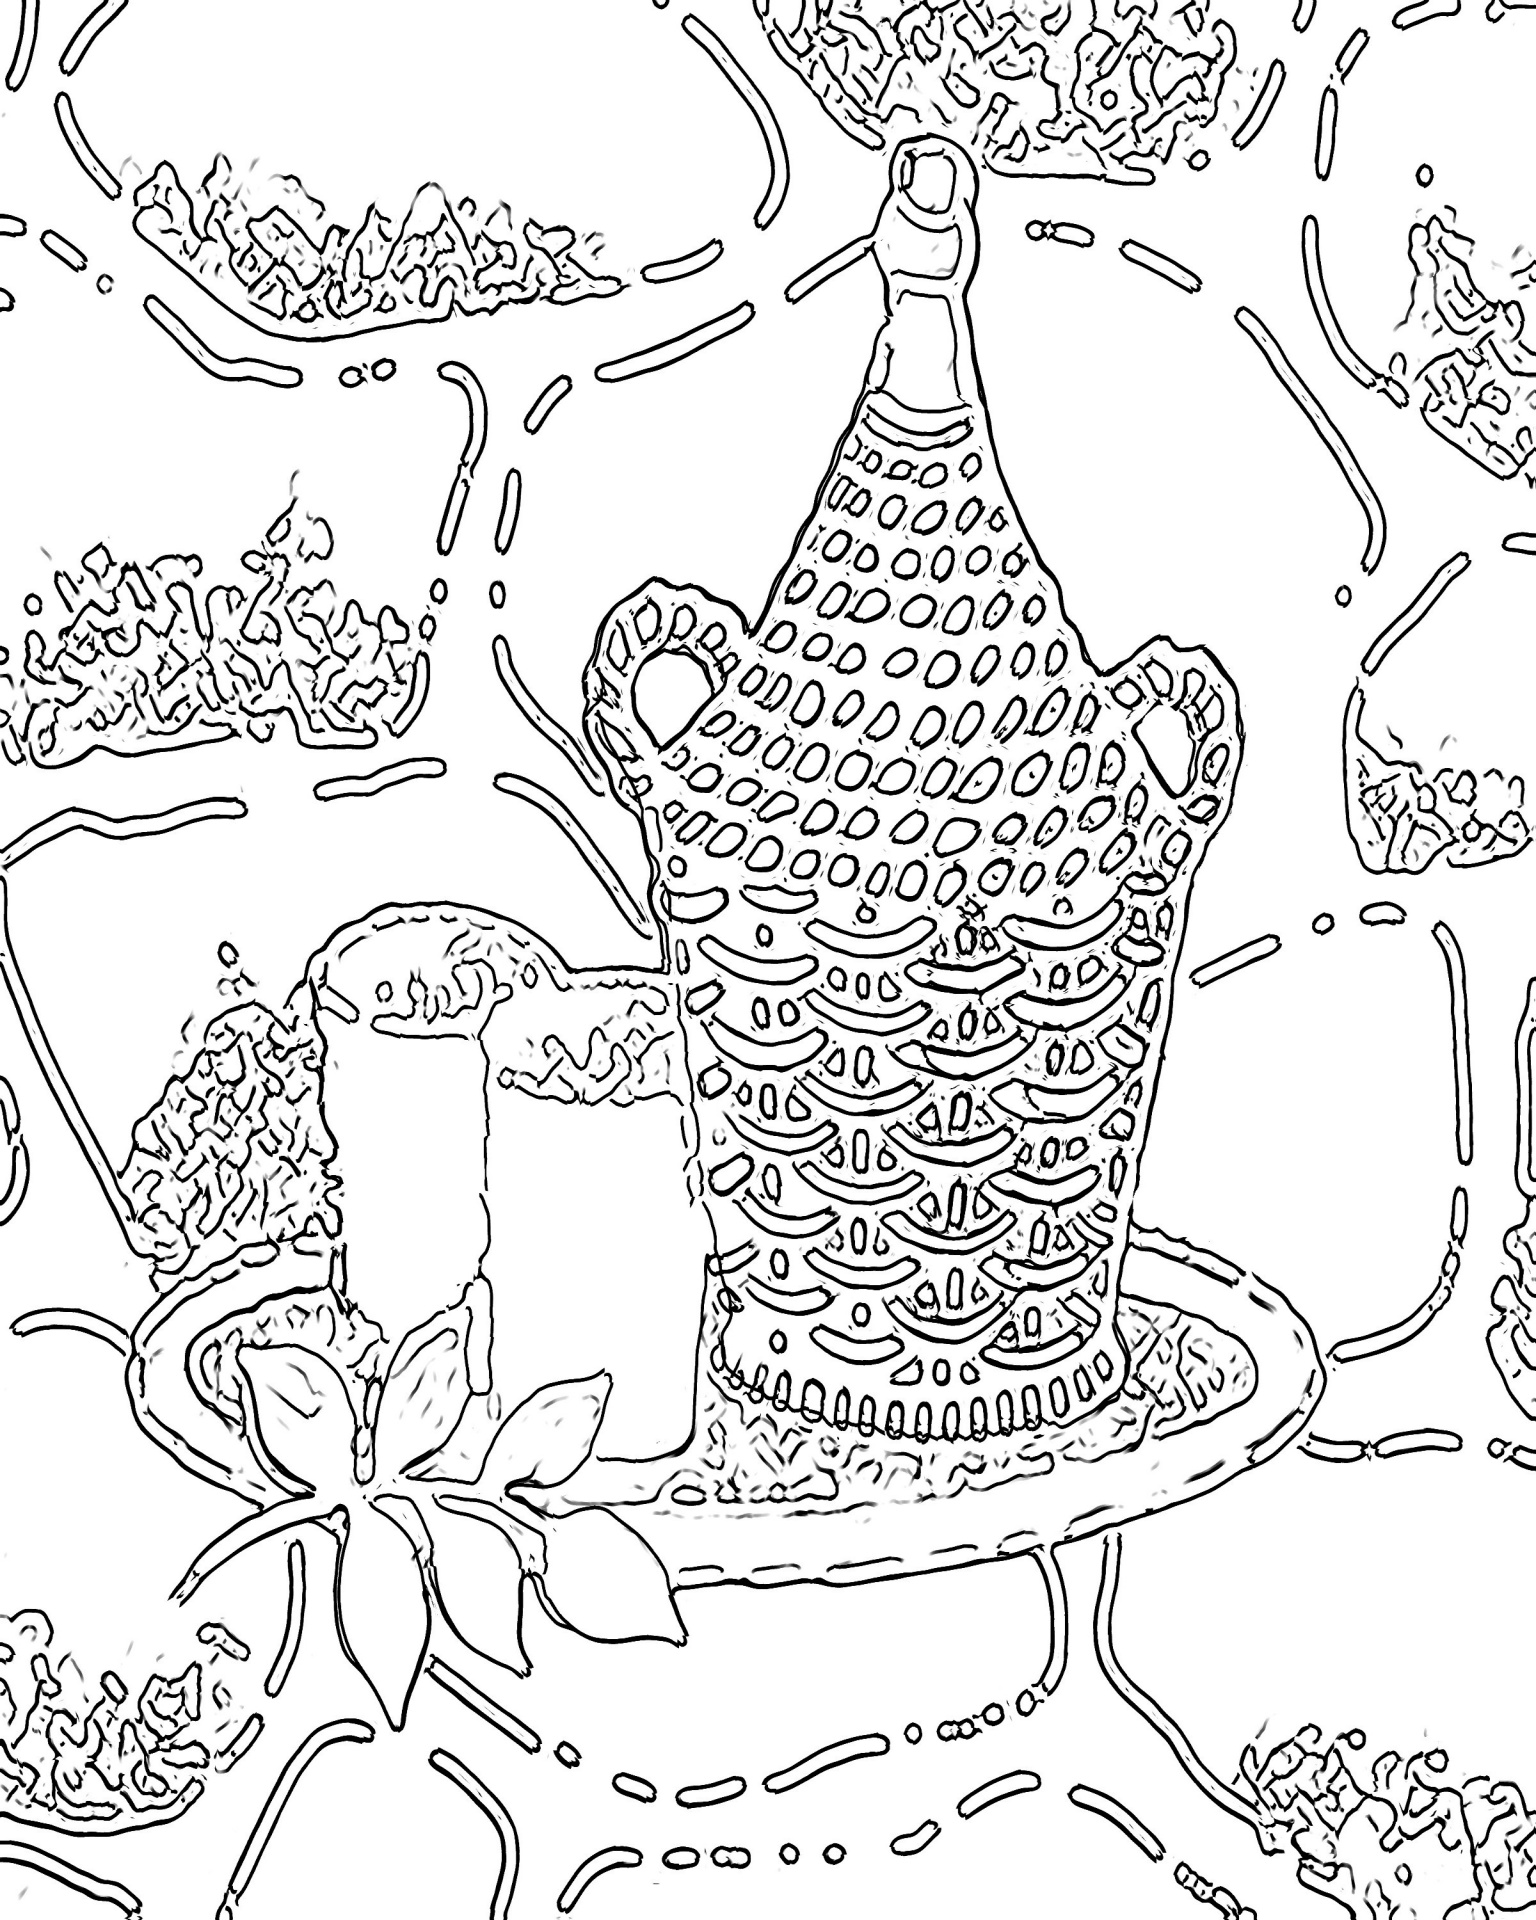 coloring pictures for adults difficult coloring pages for adults free printable adults coloring pictures for